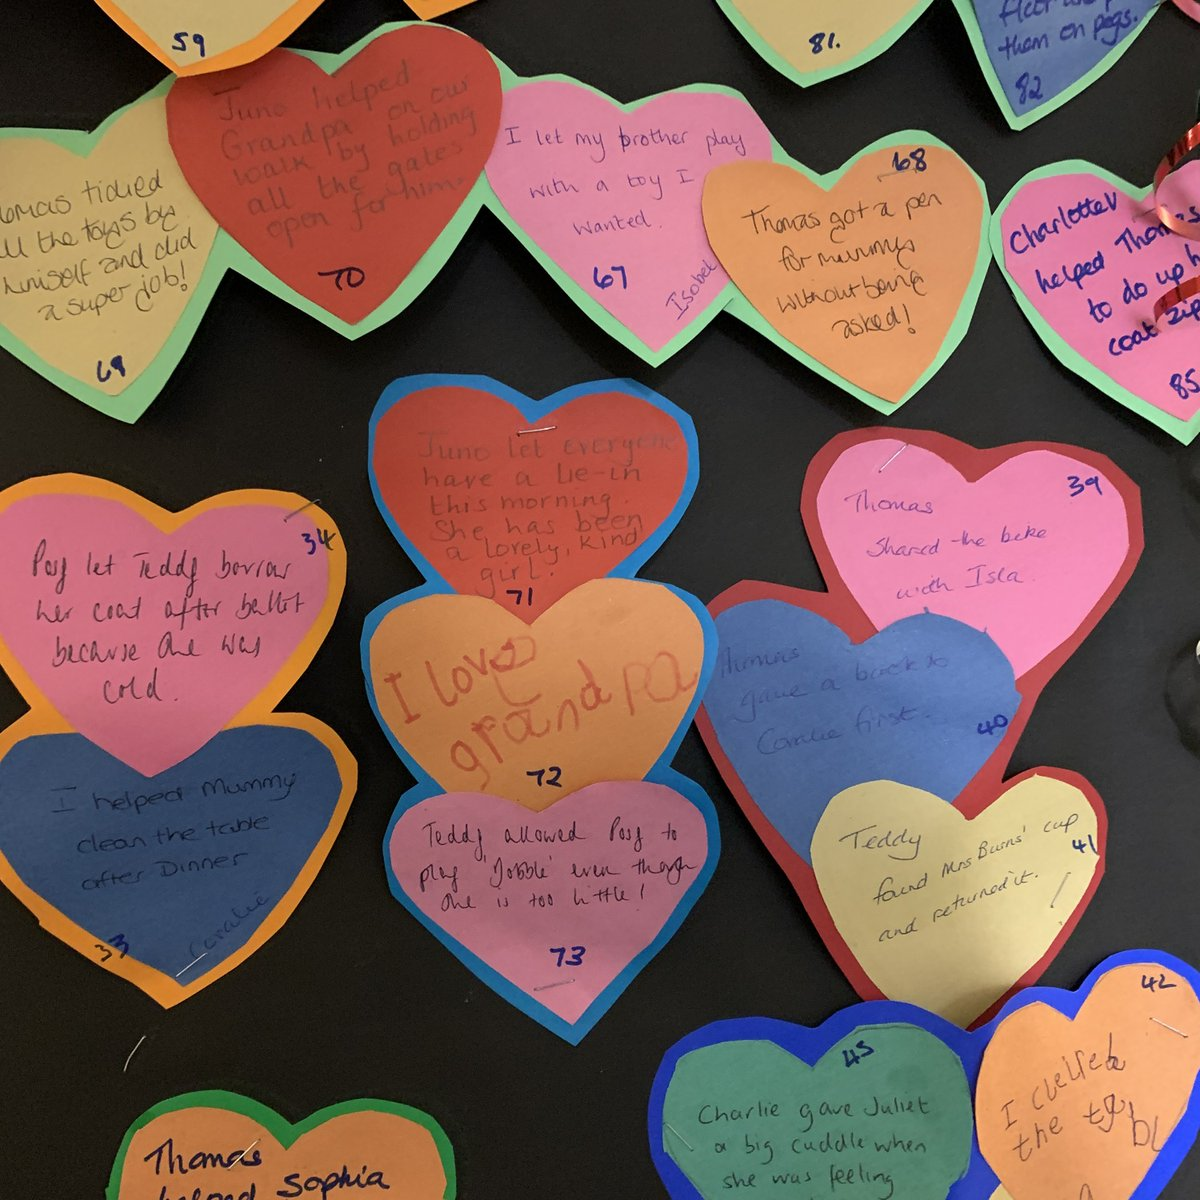 On World Kindness Day in November one of our Reception classes started documenting their 100 Acts of Kindness. There are some really lovely ones - well done everyone! #worldkindessday #BeKind #100actsofkindness #RupertHouse